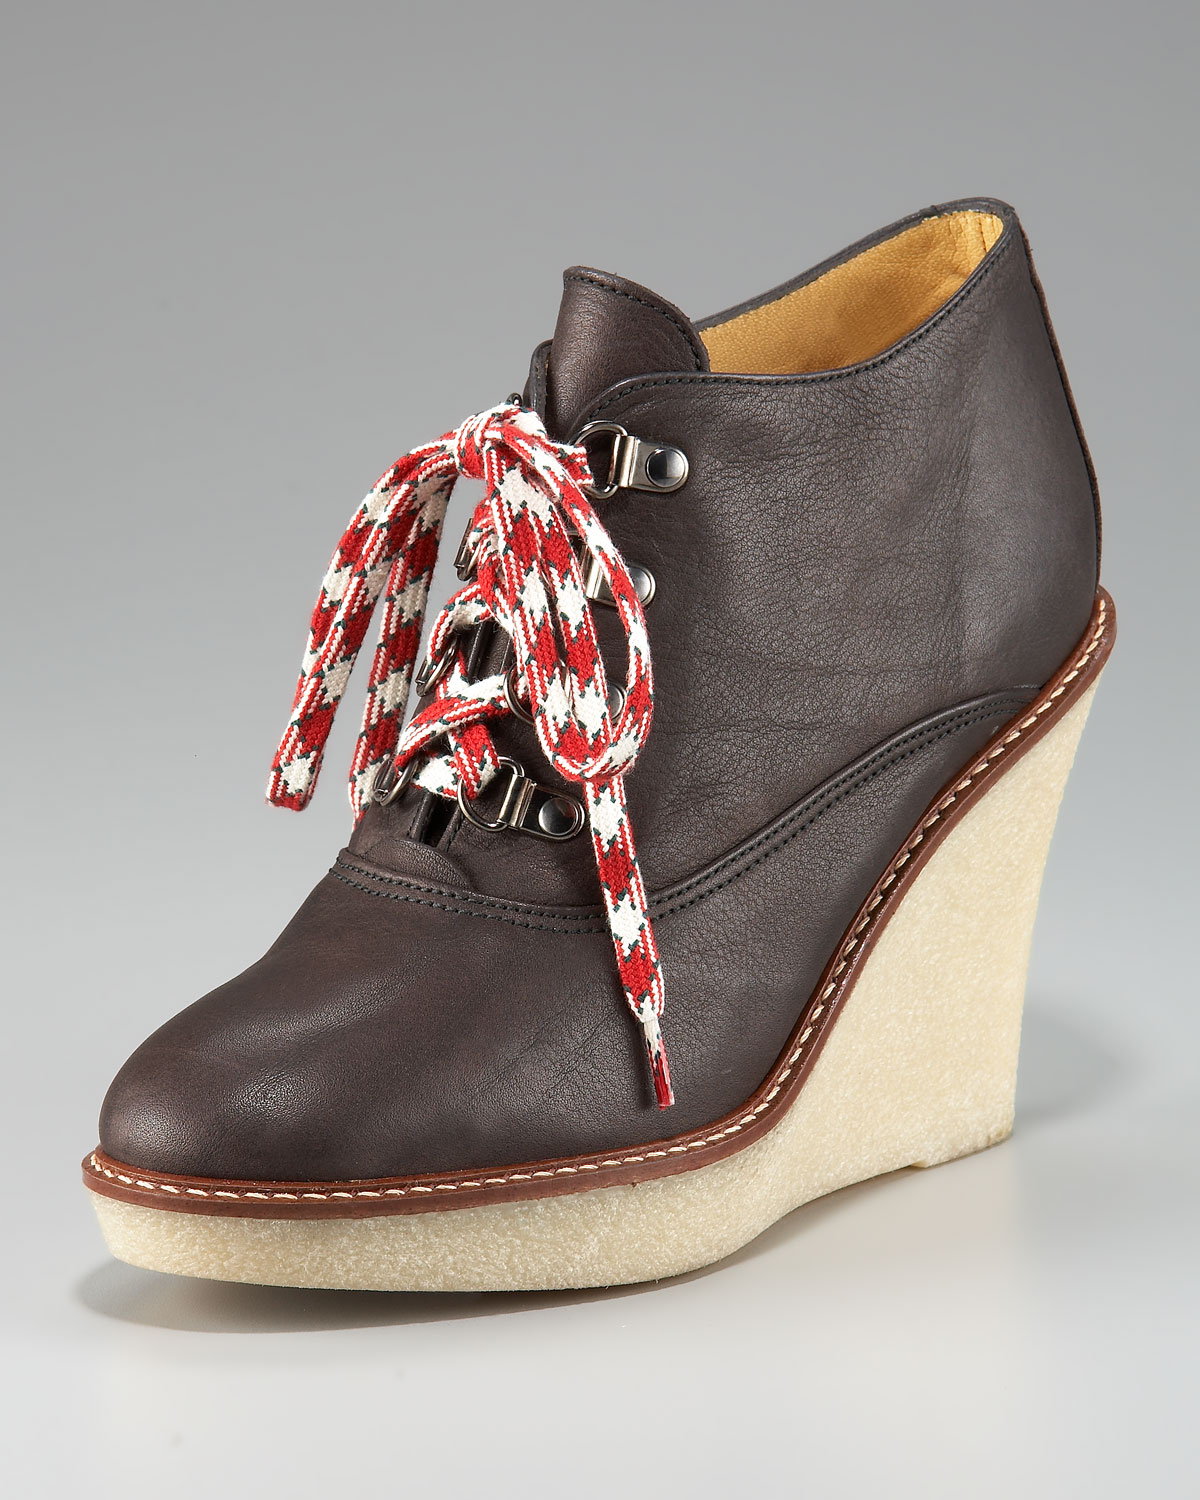 Lyst Bettye Muller Lace Up Wedge Bootie In Brown